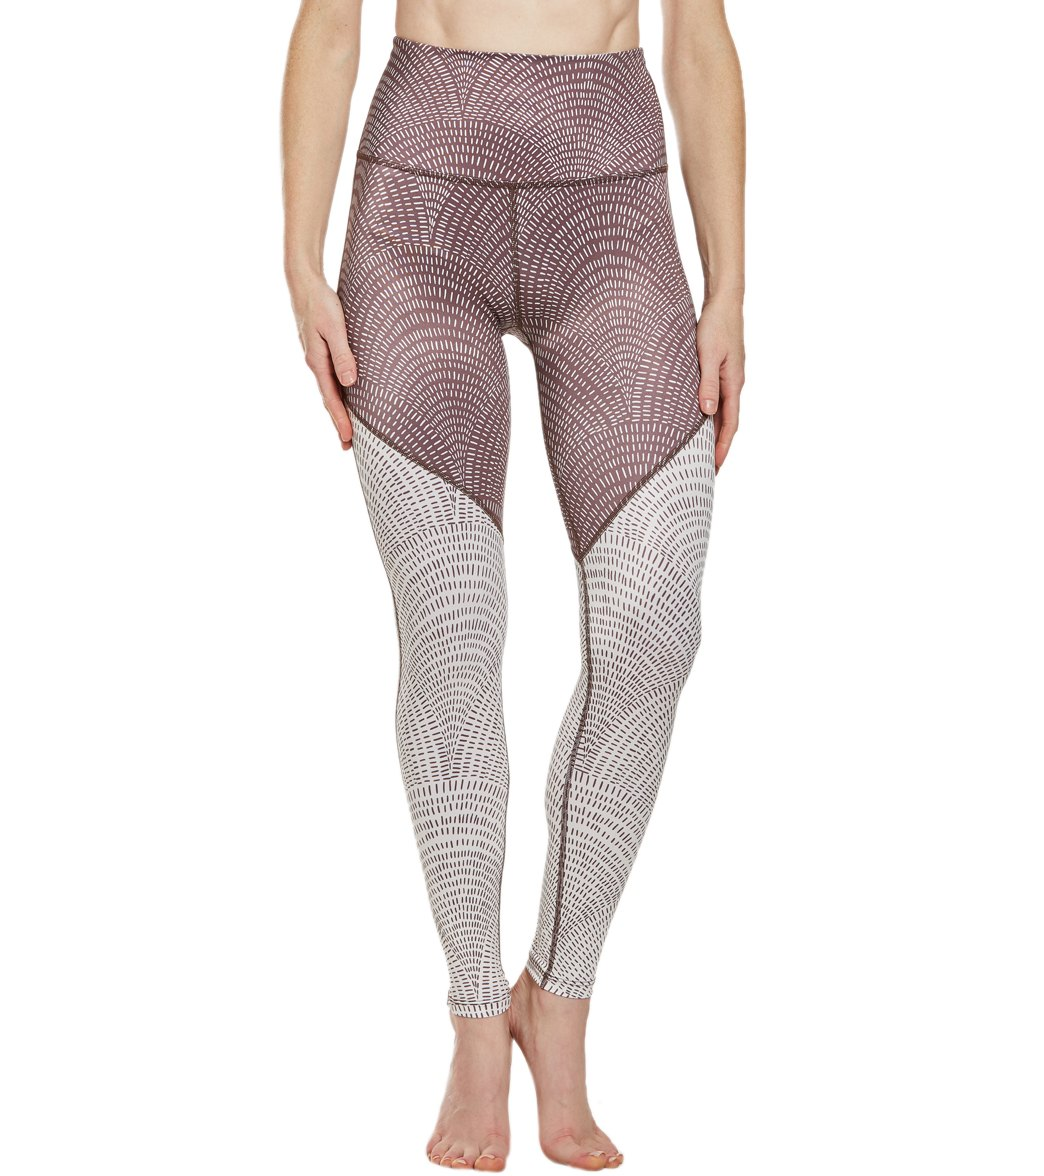 2036b116af9f6d Beyond Yoga Lux High Waisted Angled 7/8 Yoga Leggings at YogaOutlet.com - Free  Shipping